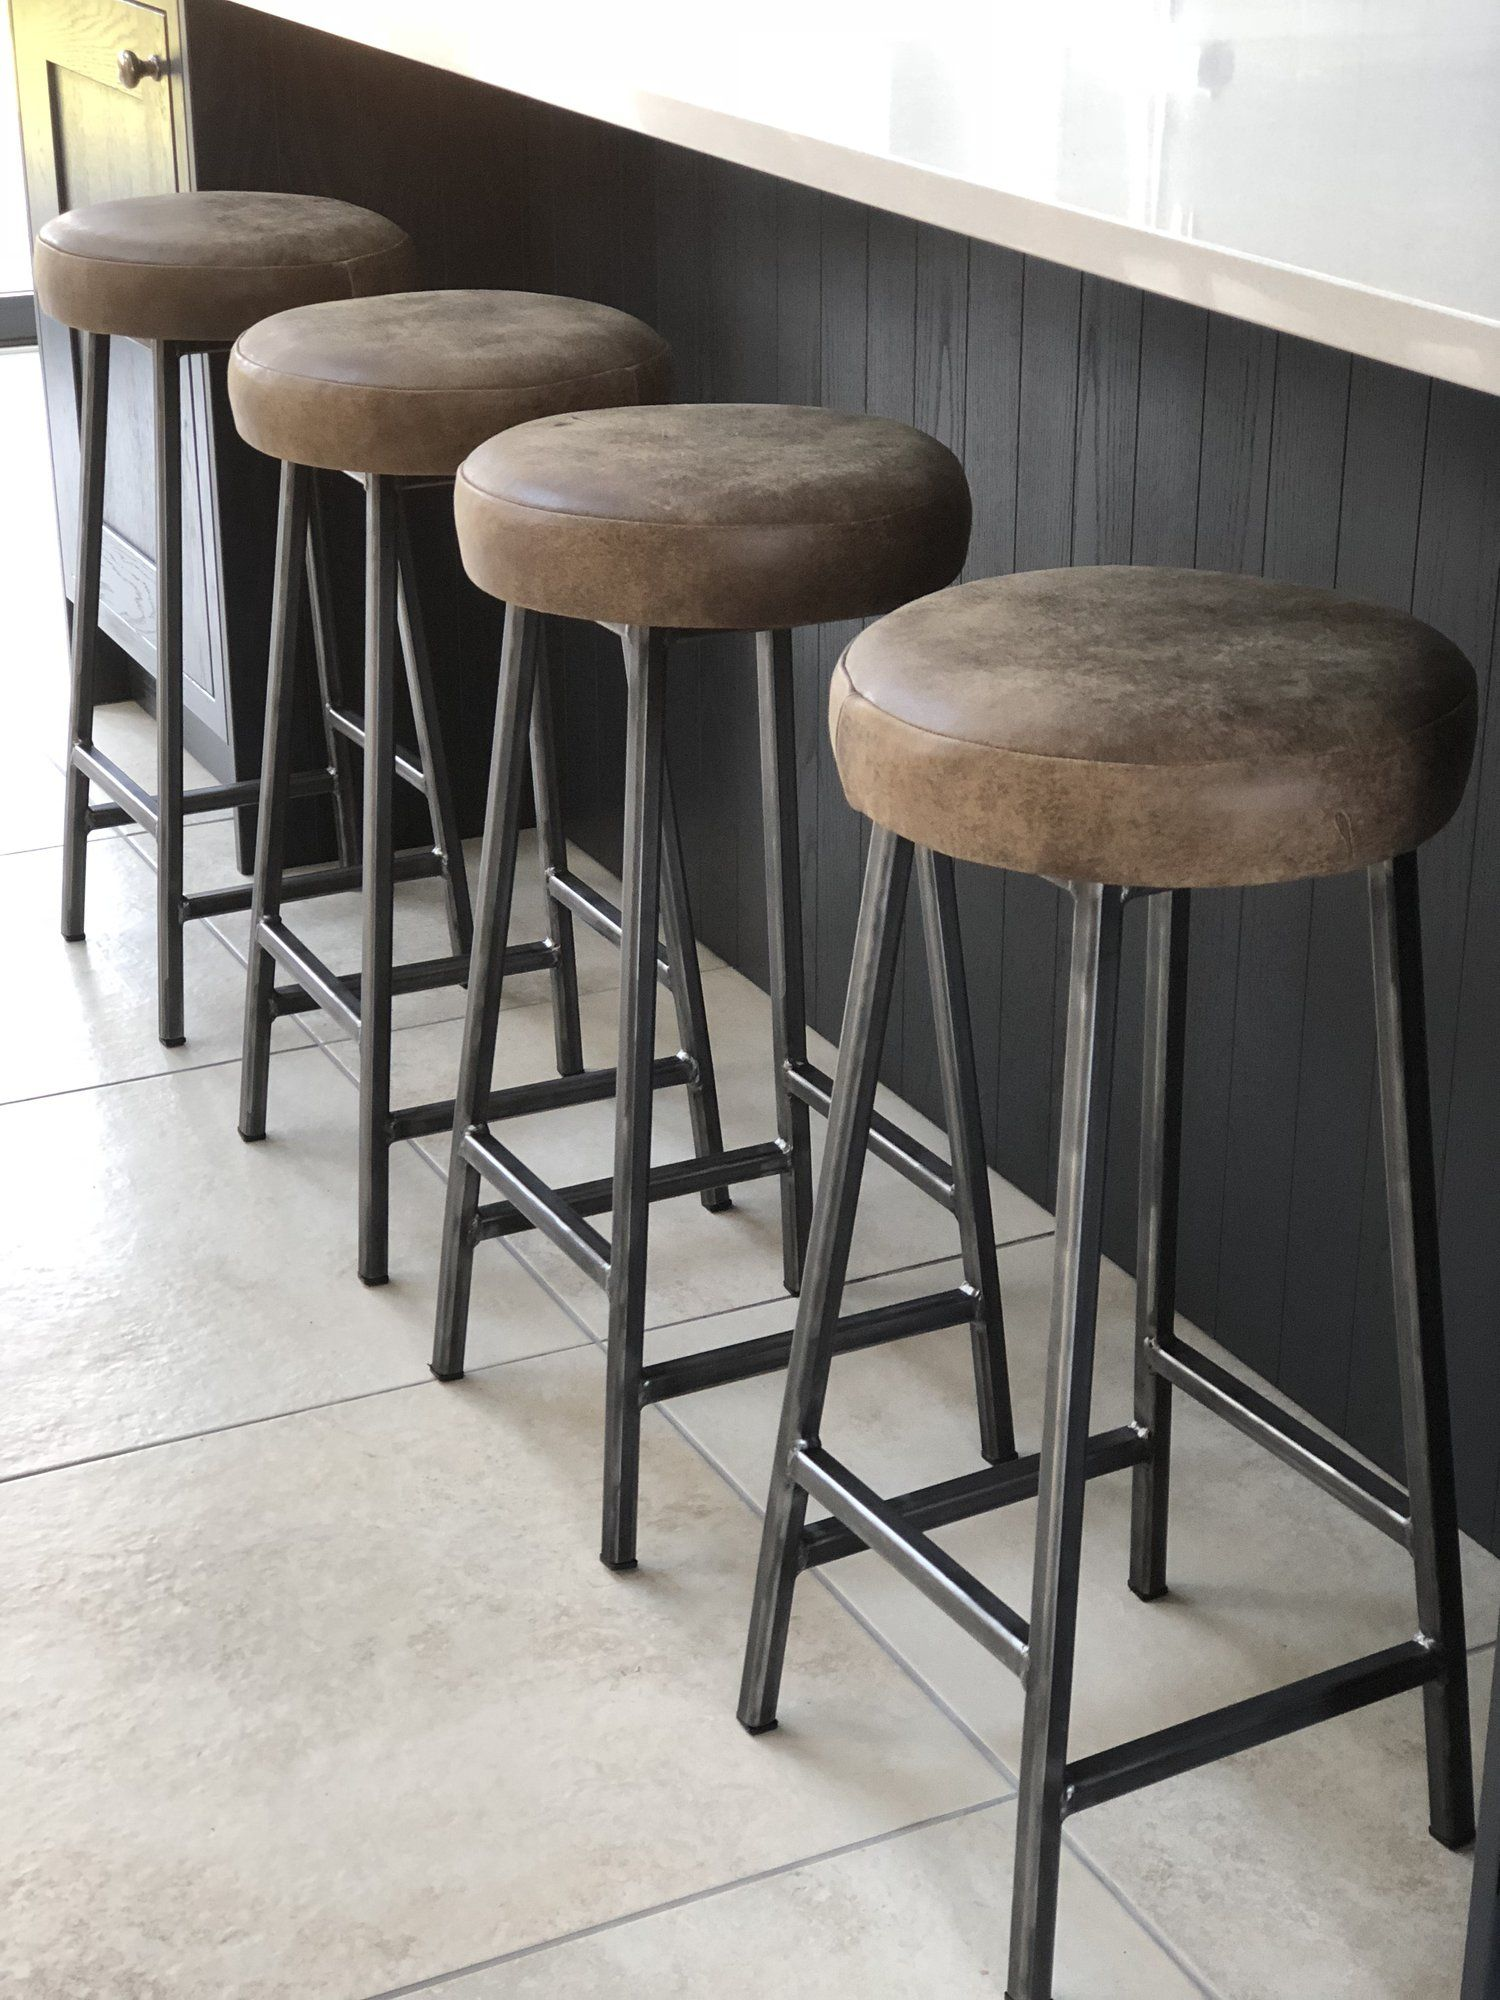 Leather Seat Bar Stool Paul Frampton Design Ltd Bar Stools Industrial Bar Stools Steel Bar Stools